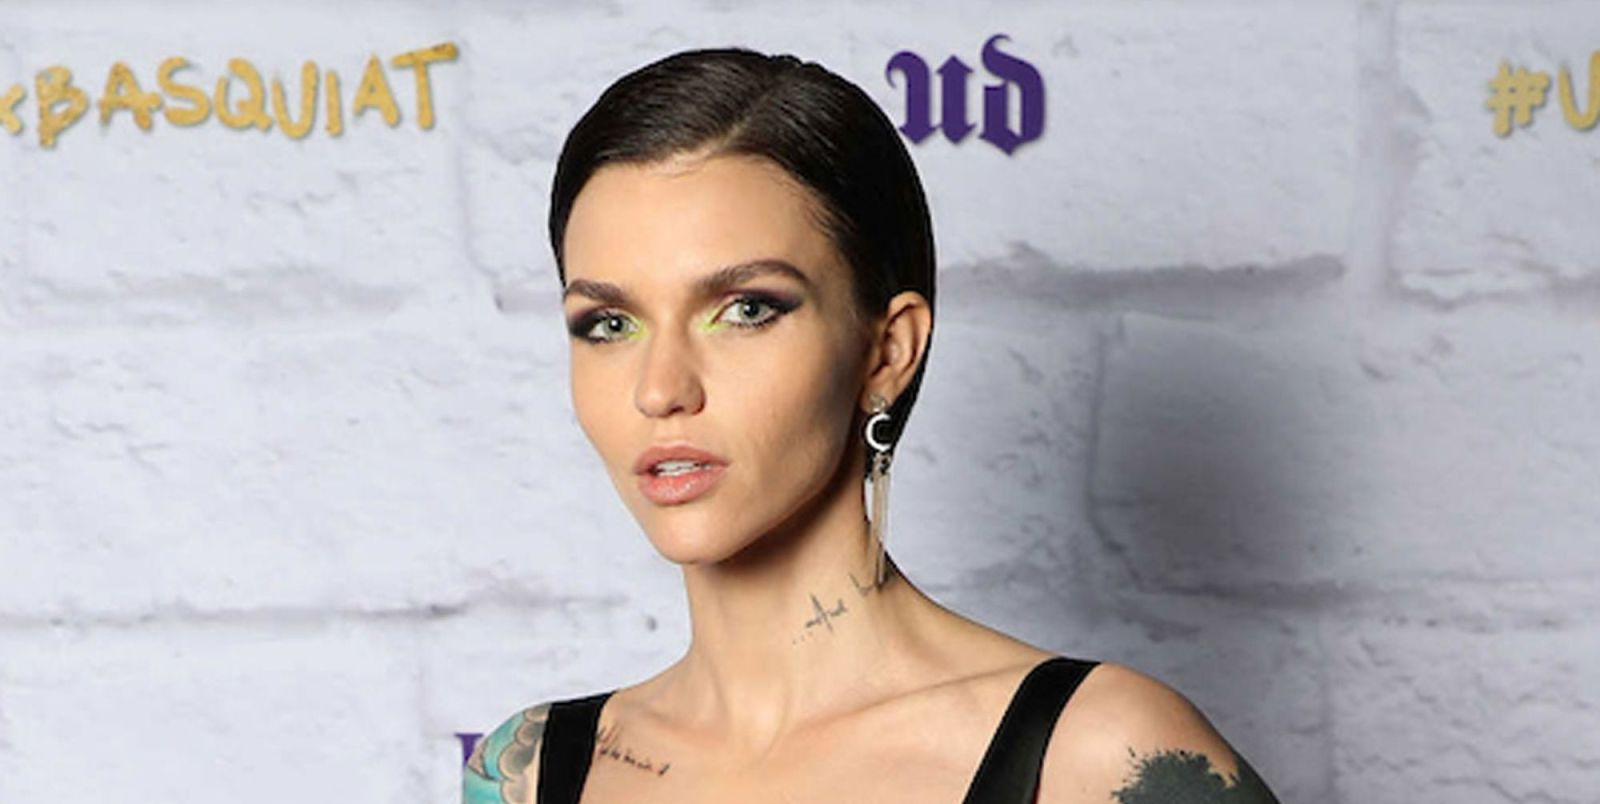 Ruby Rose Says She Felt 'Dirty' After Dissing Katy Perry